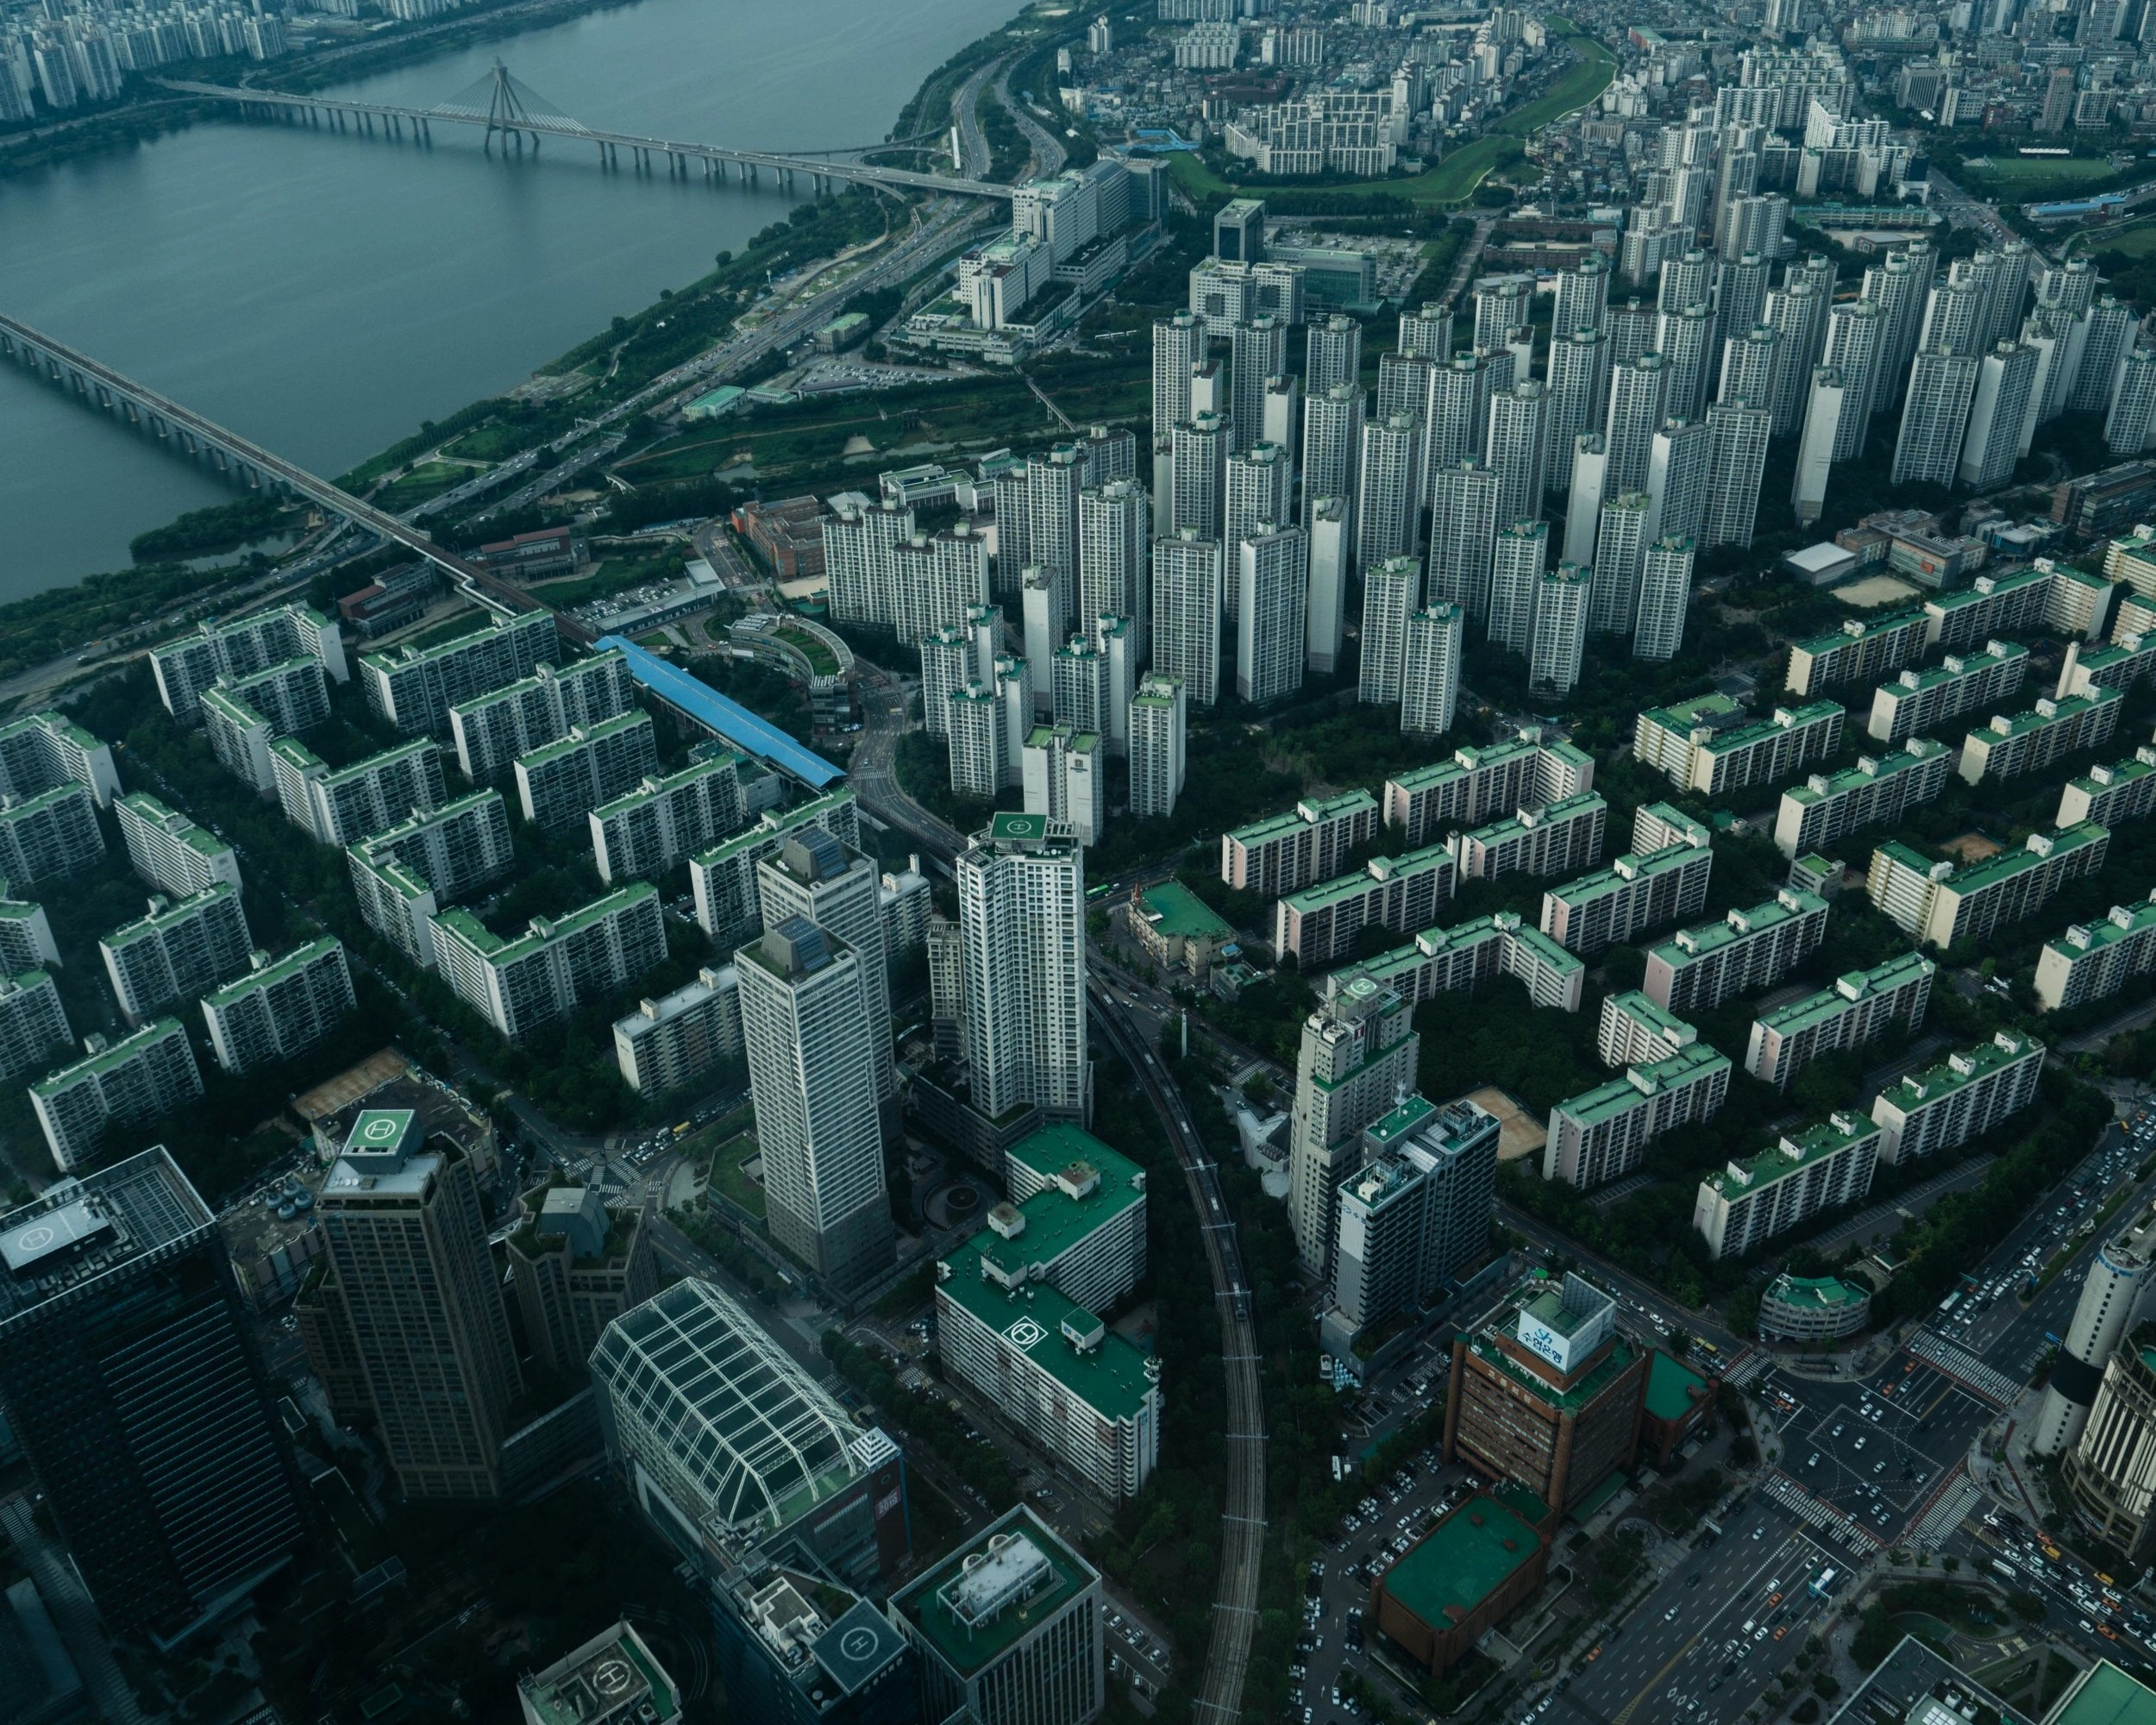 View from the 123rd floor of South Korea's tallest building